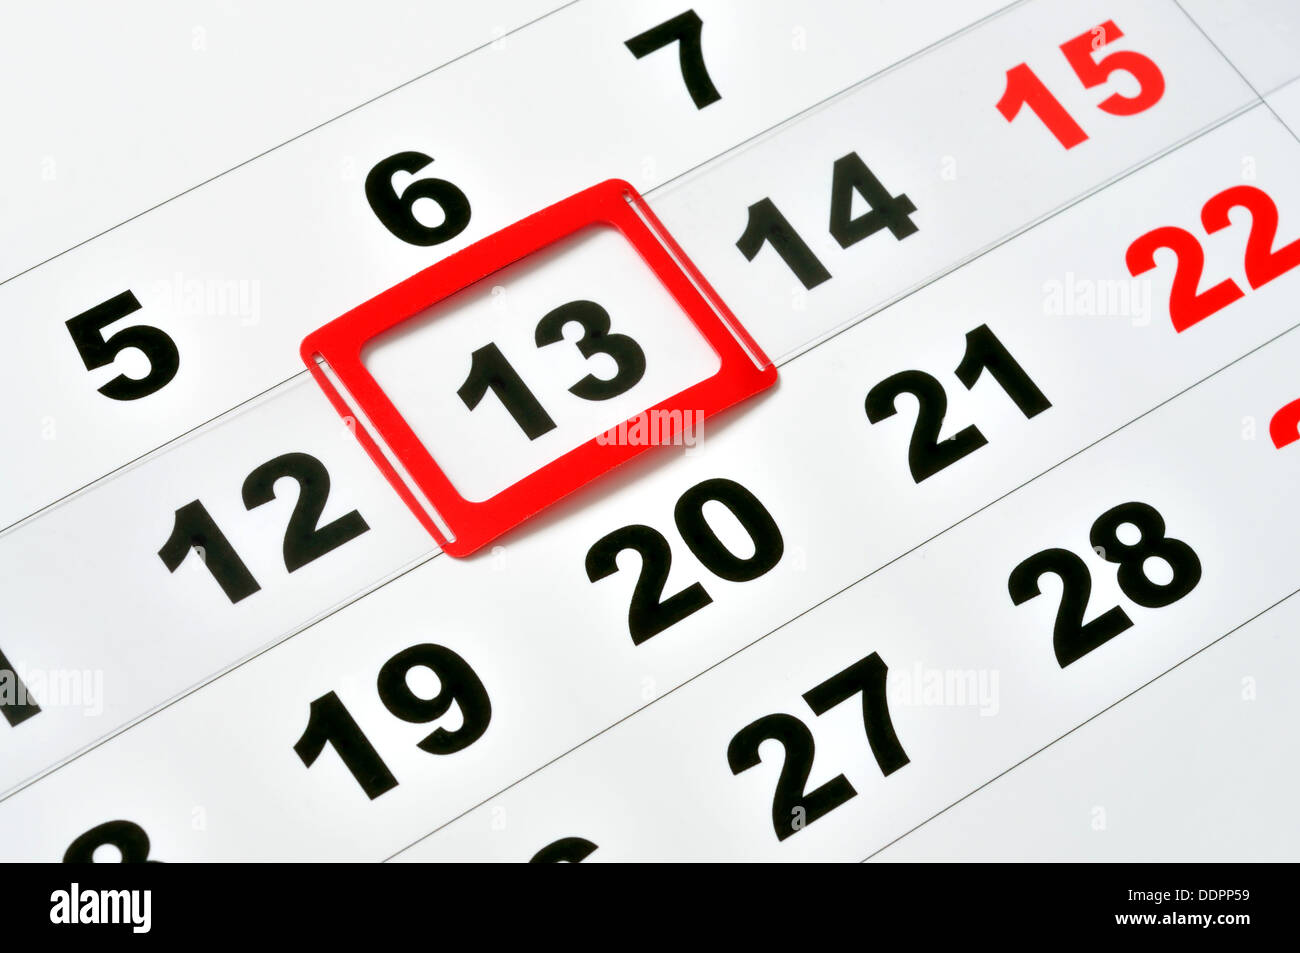 Friday the 13th - Stock Image